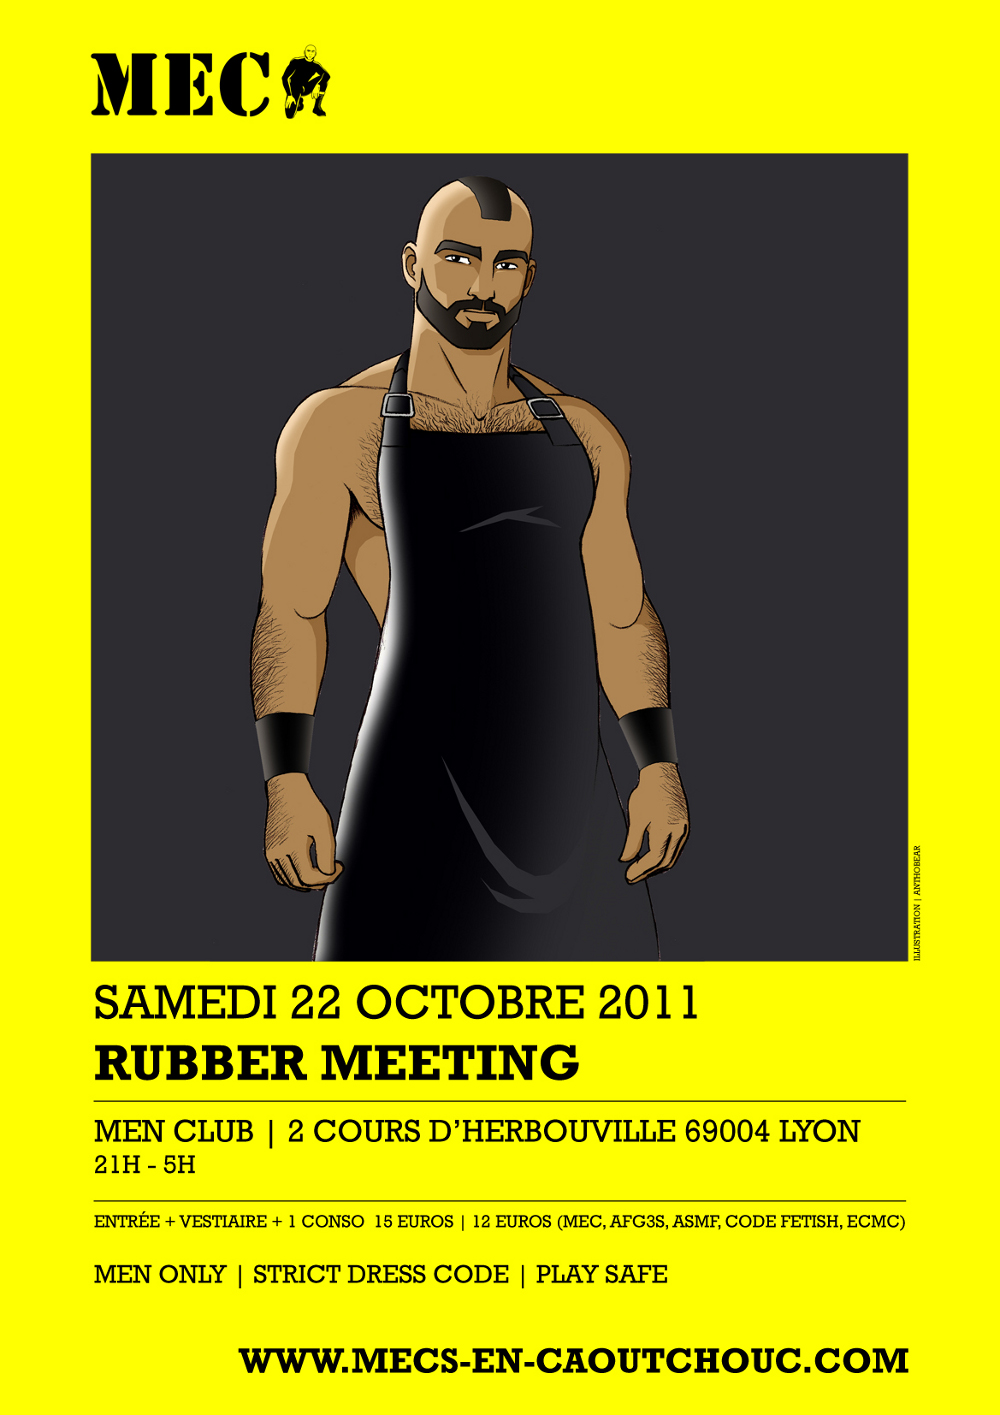 RUBBER MEETING | SAMEDI 22 OCTOBRE 2011 | MEN CLUB LYON